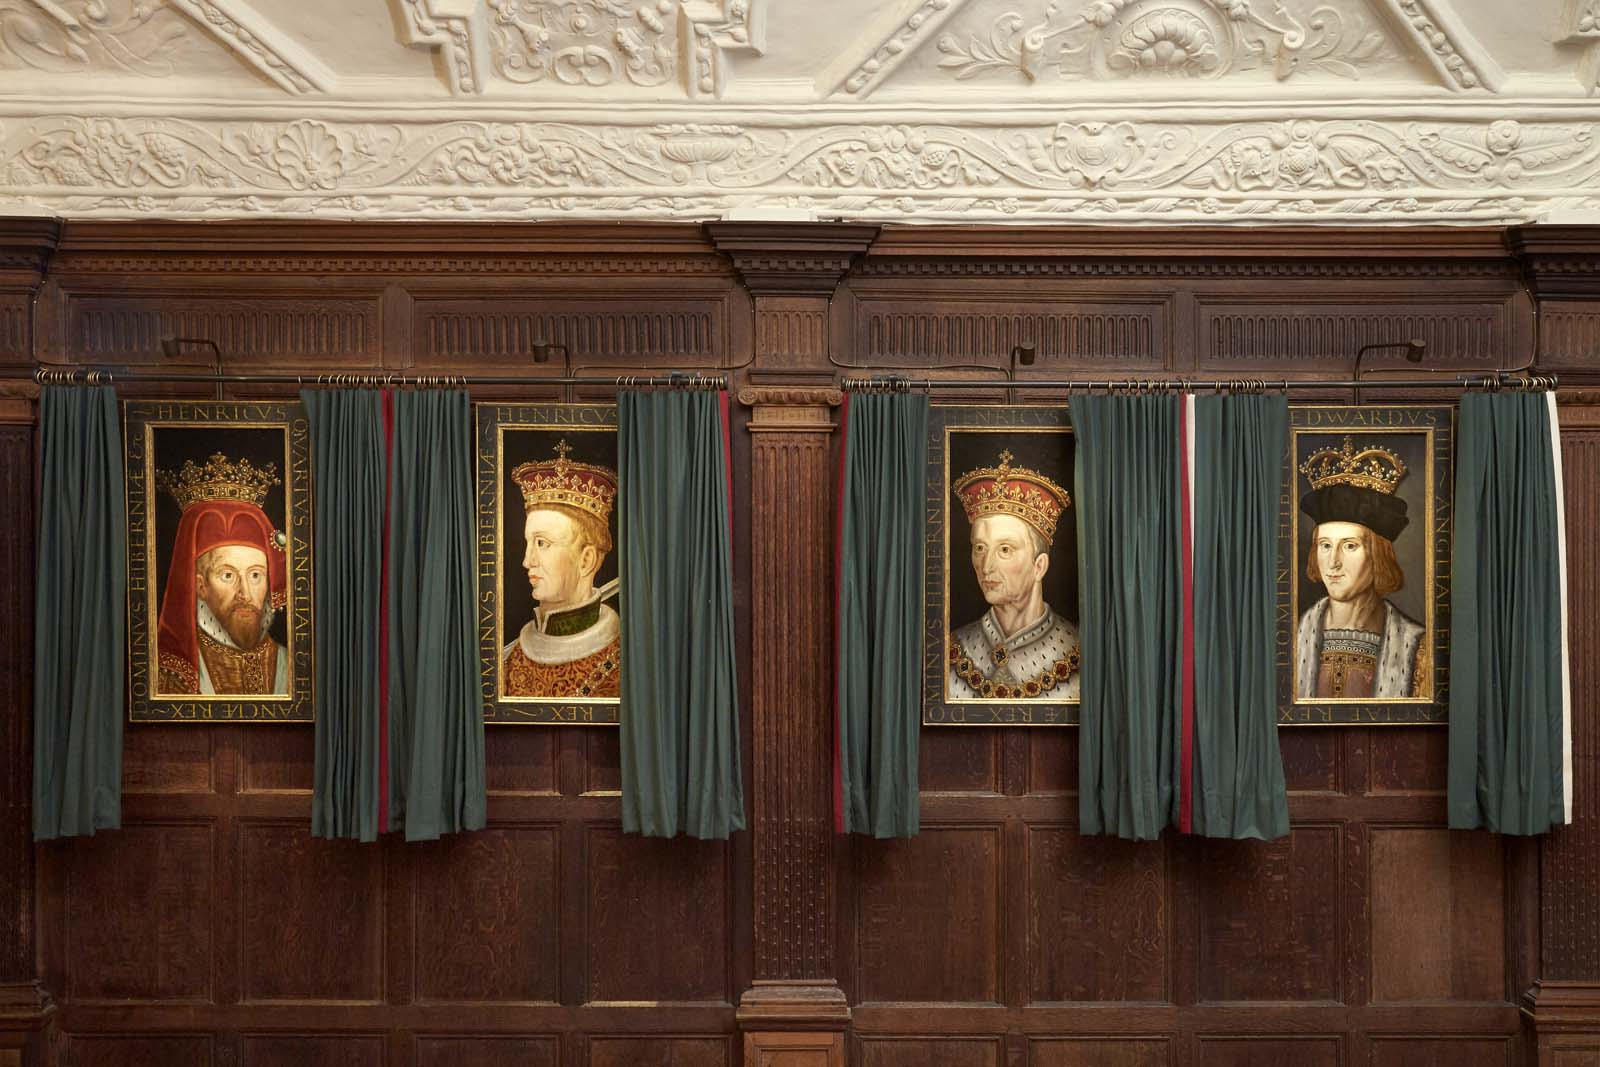 a photo of four king's portraits in curtained frames